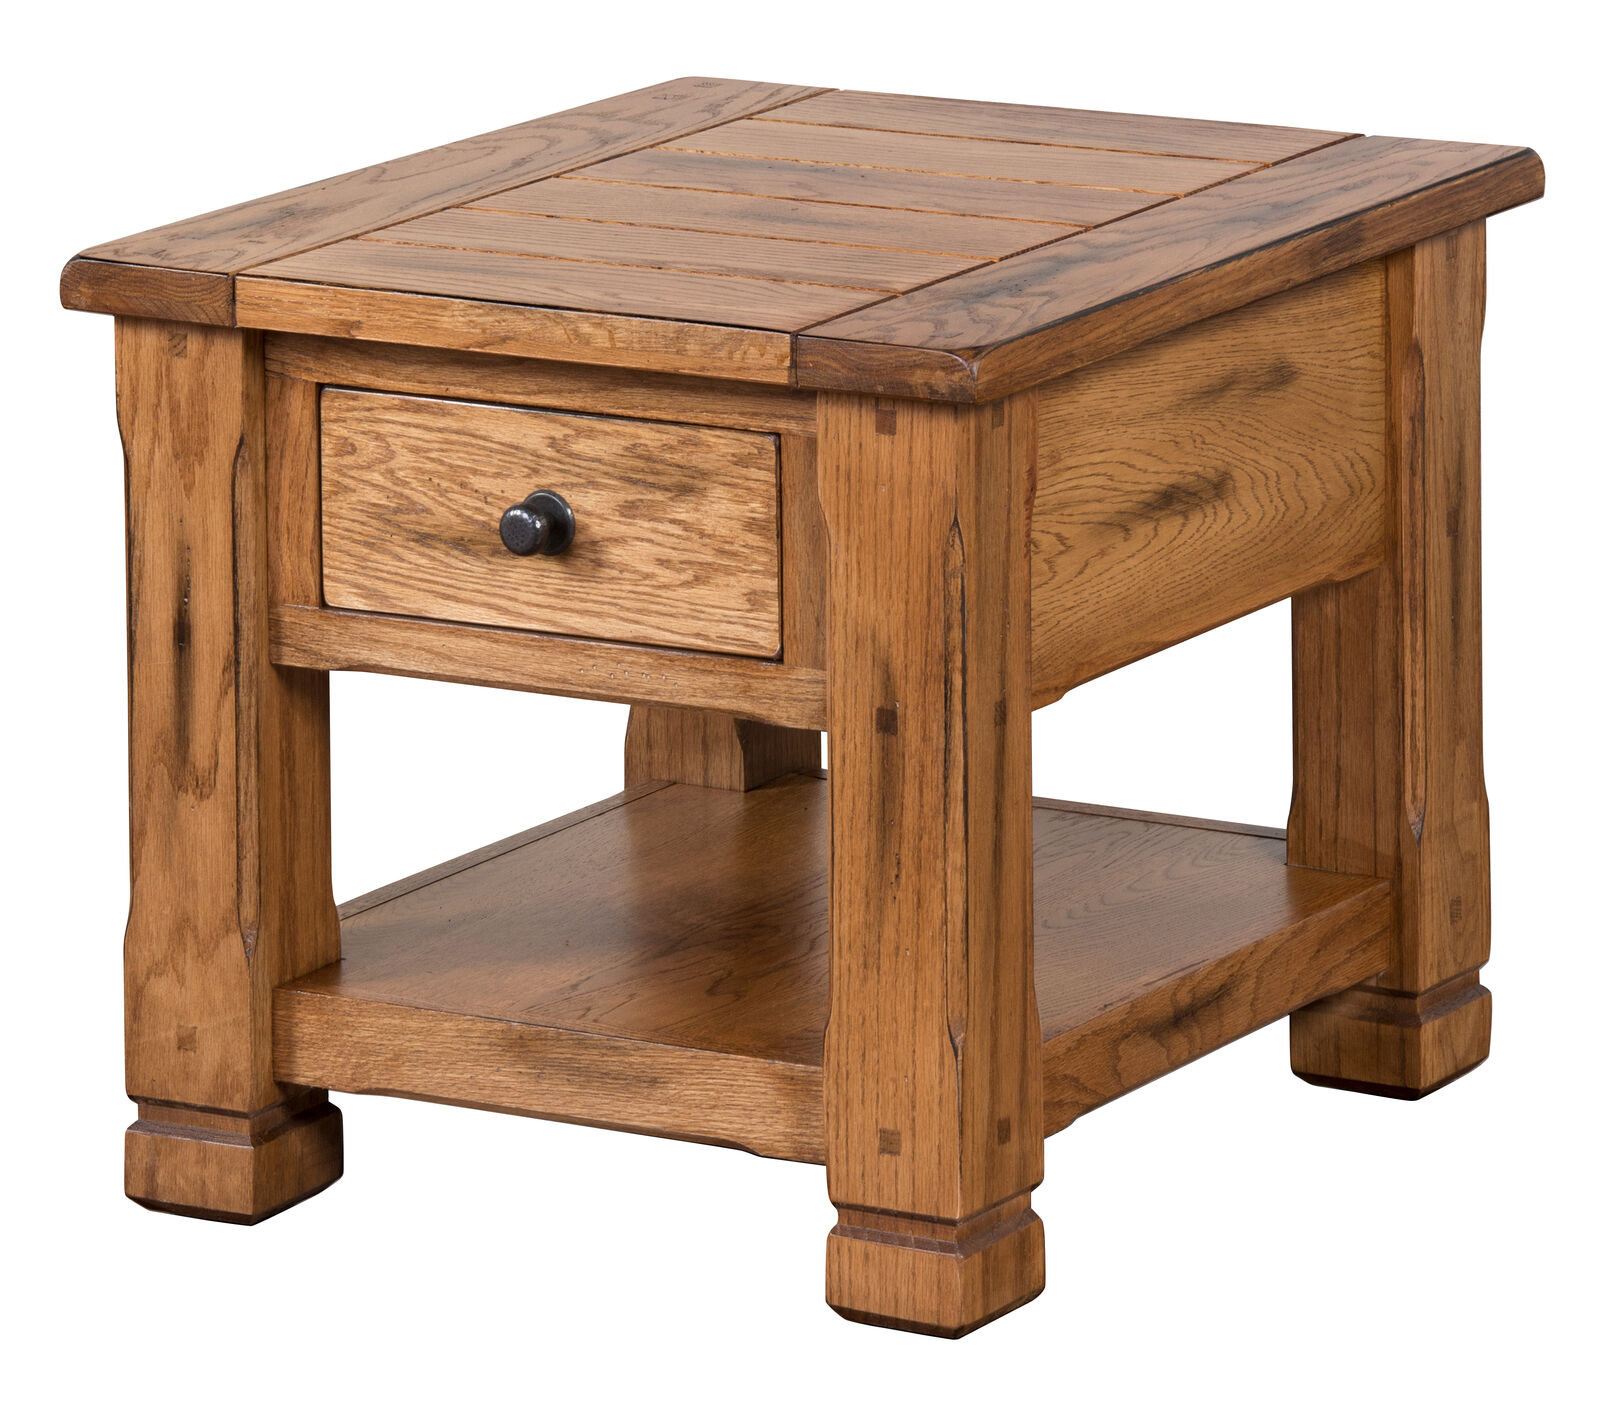 sunny designs sedona end table rustic oak tables details about powell masterpiece jewelry armoire inch outdoor brass and glass nesting stanley cottage furniture liberty ocean isle